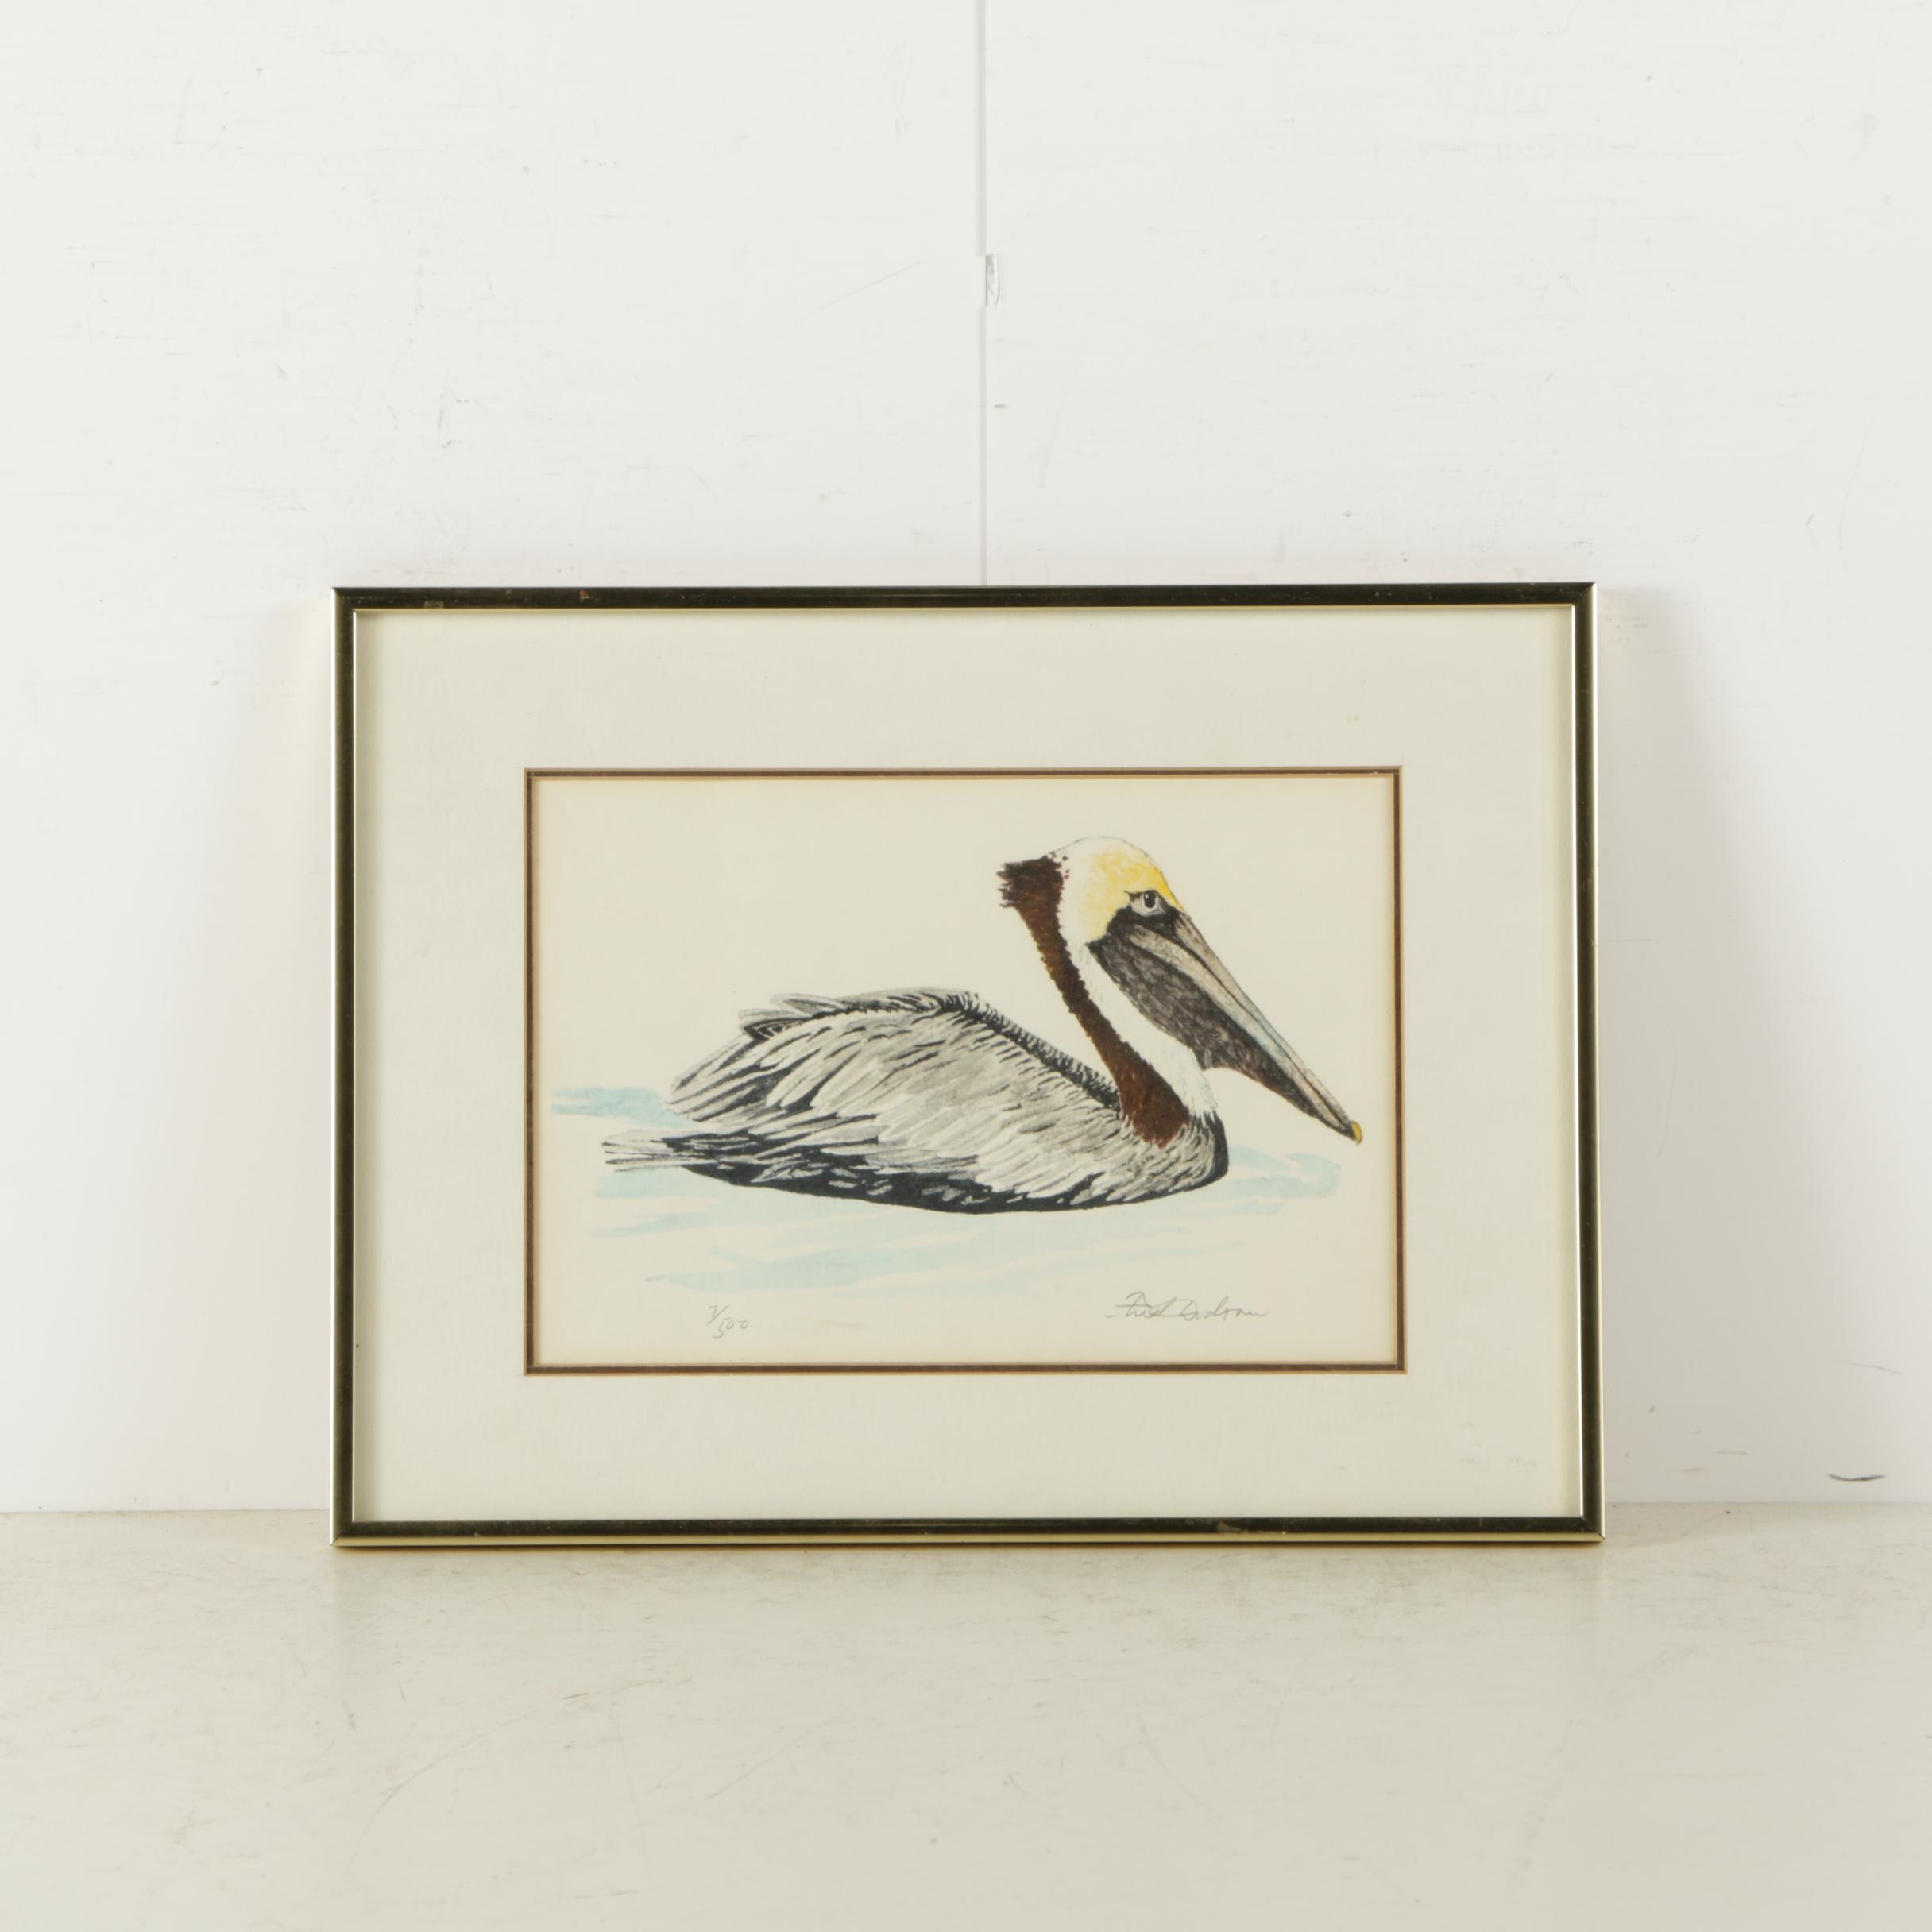 Limited Edition Offset Lithograph Print on Paper of Brown Pelican